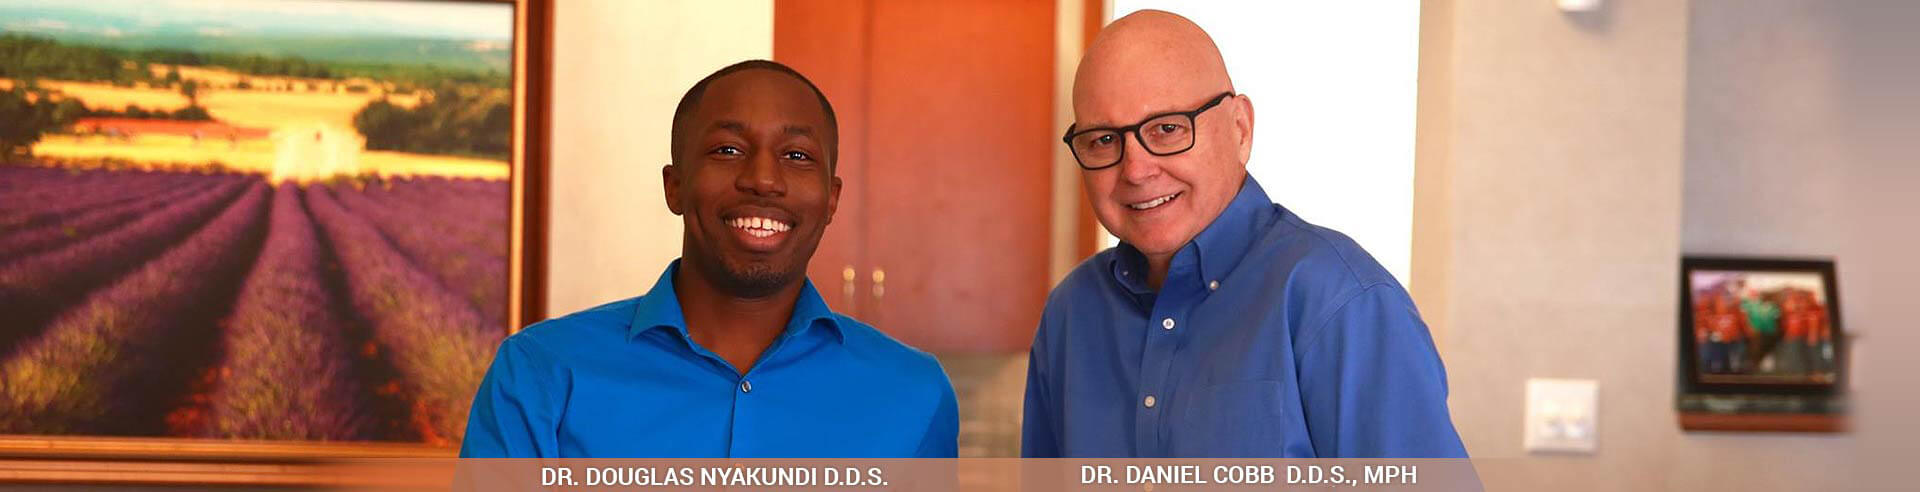 Dr.Daniel Cobb and Dr. Douglas Nyakundi